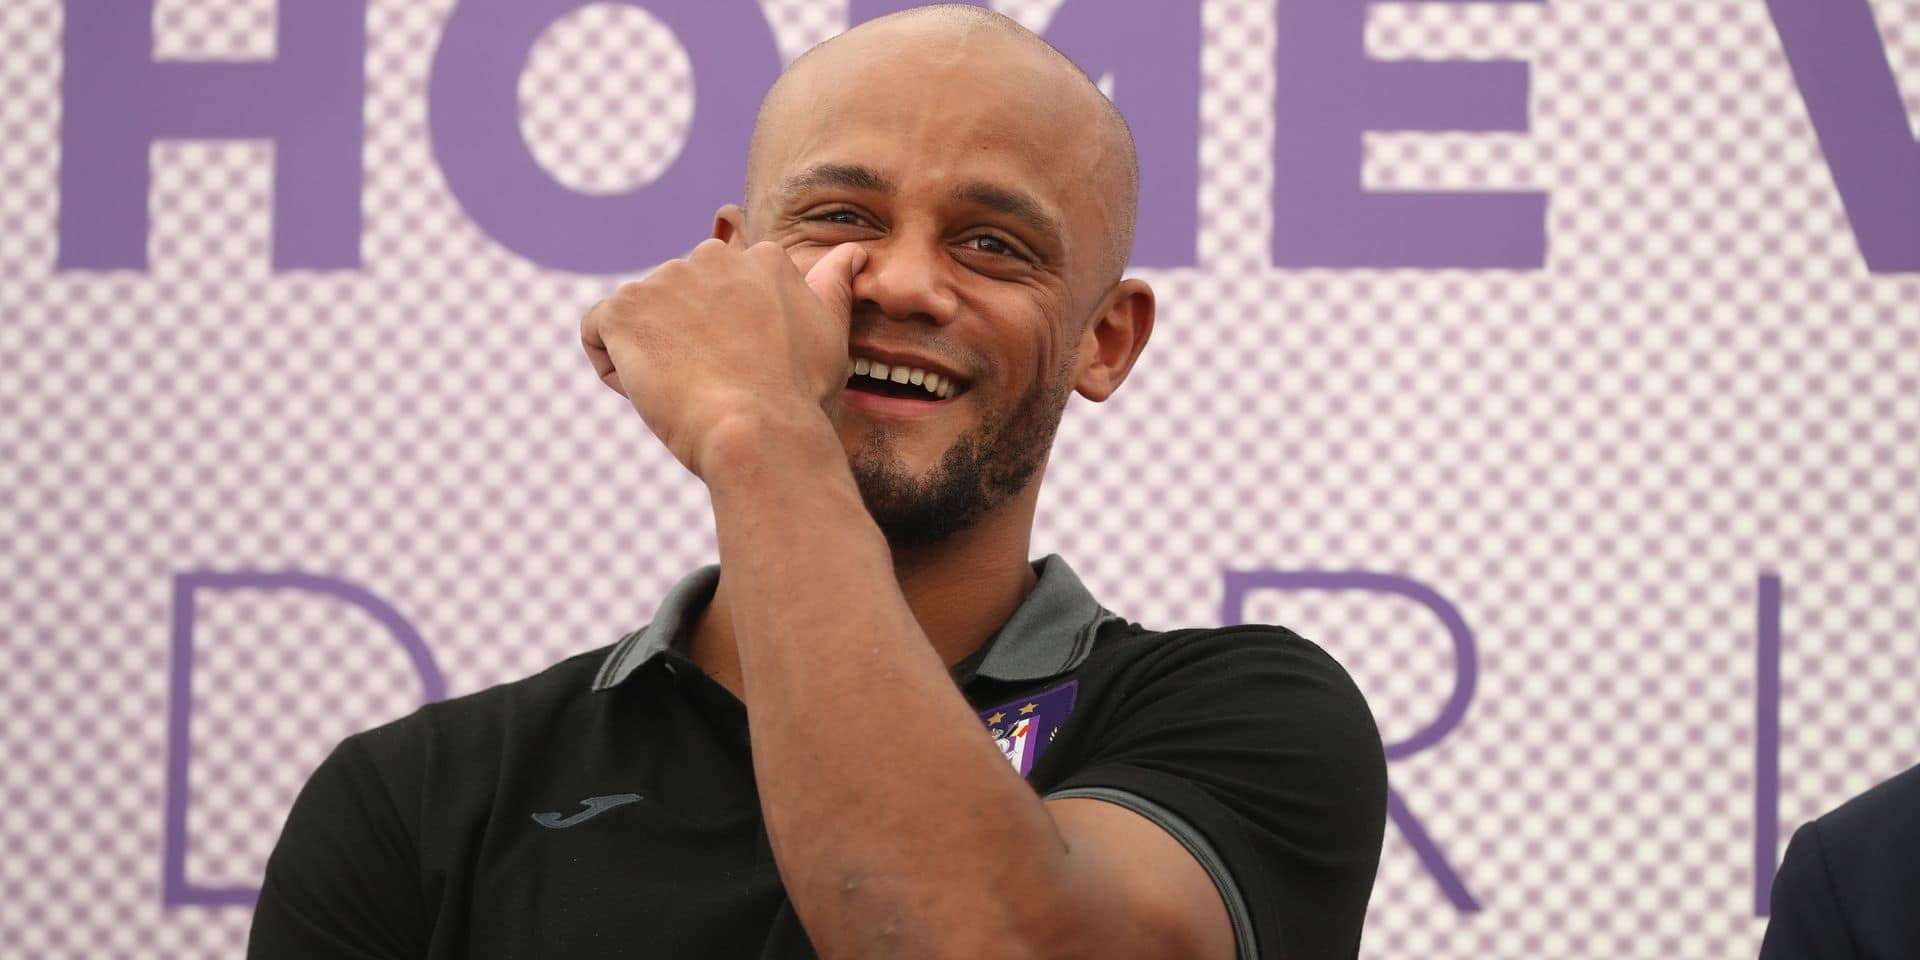 Anderlecht's new player/ manager Vincent Kompany pictured during a press conference of Jupiler Pro League team RSC Anderlecht to present it's new player/ manager, Tuesday 25 June 2019 in Brussels. BELGA PHOTO VIRGINIE LEFOUR